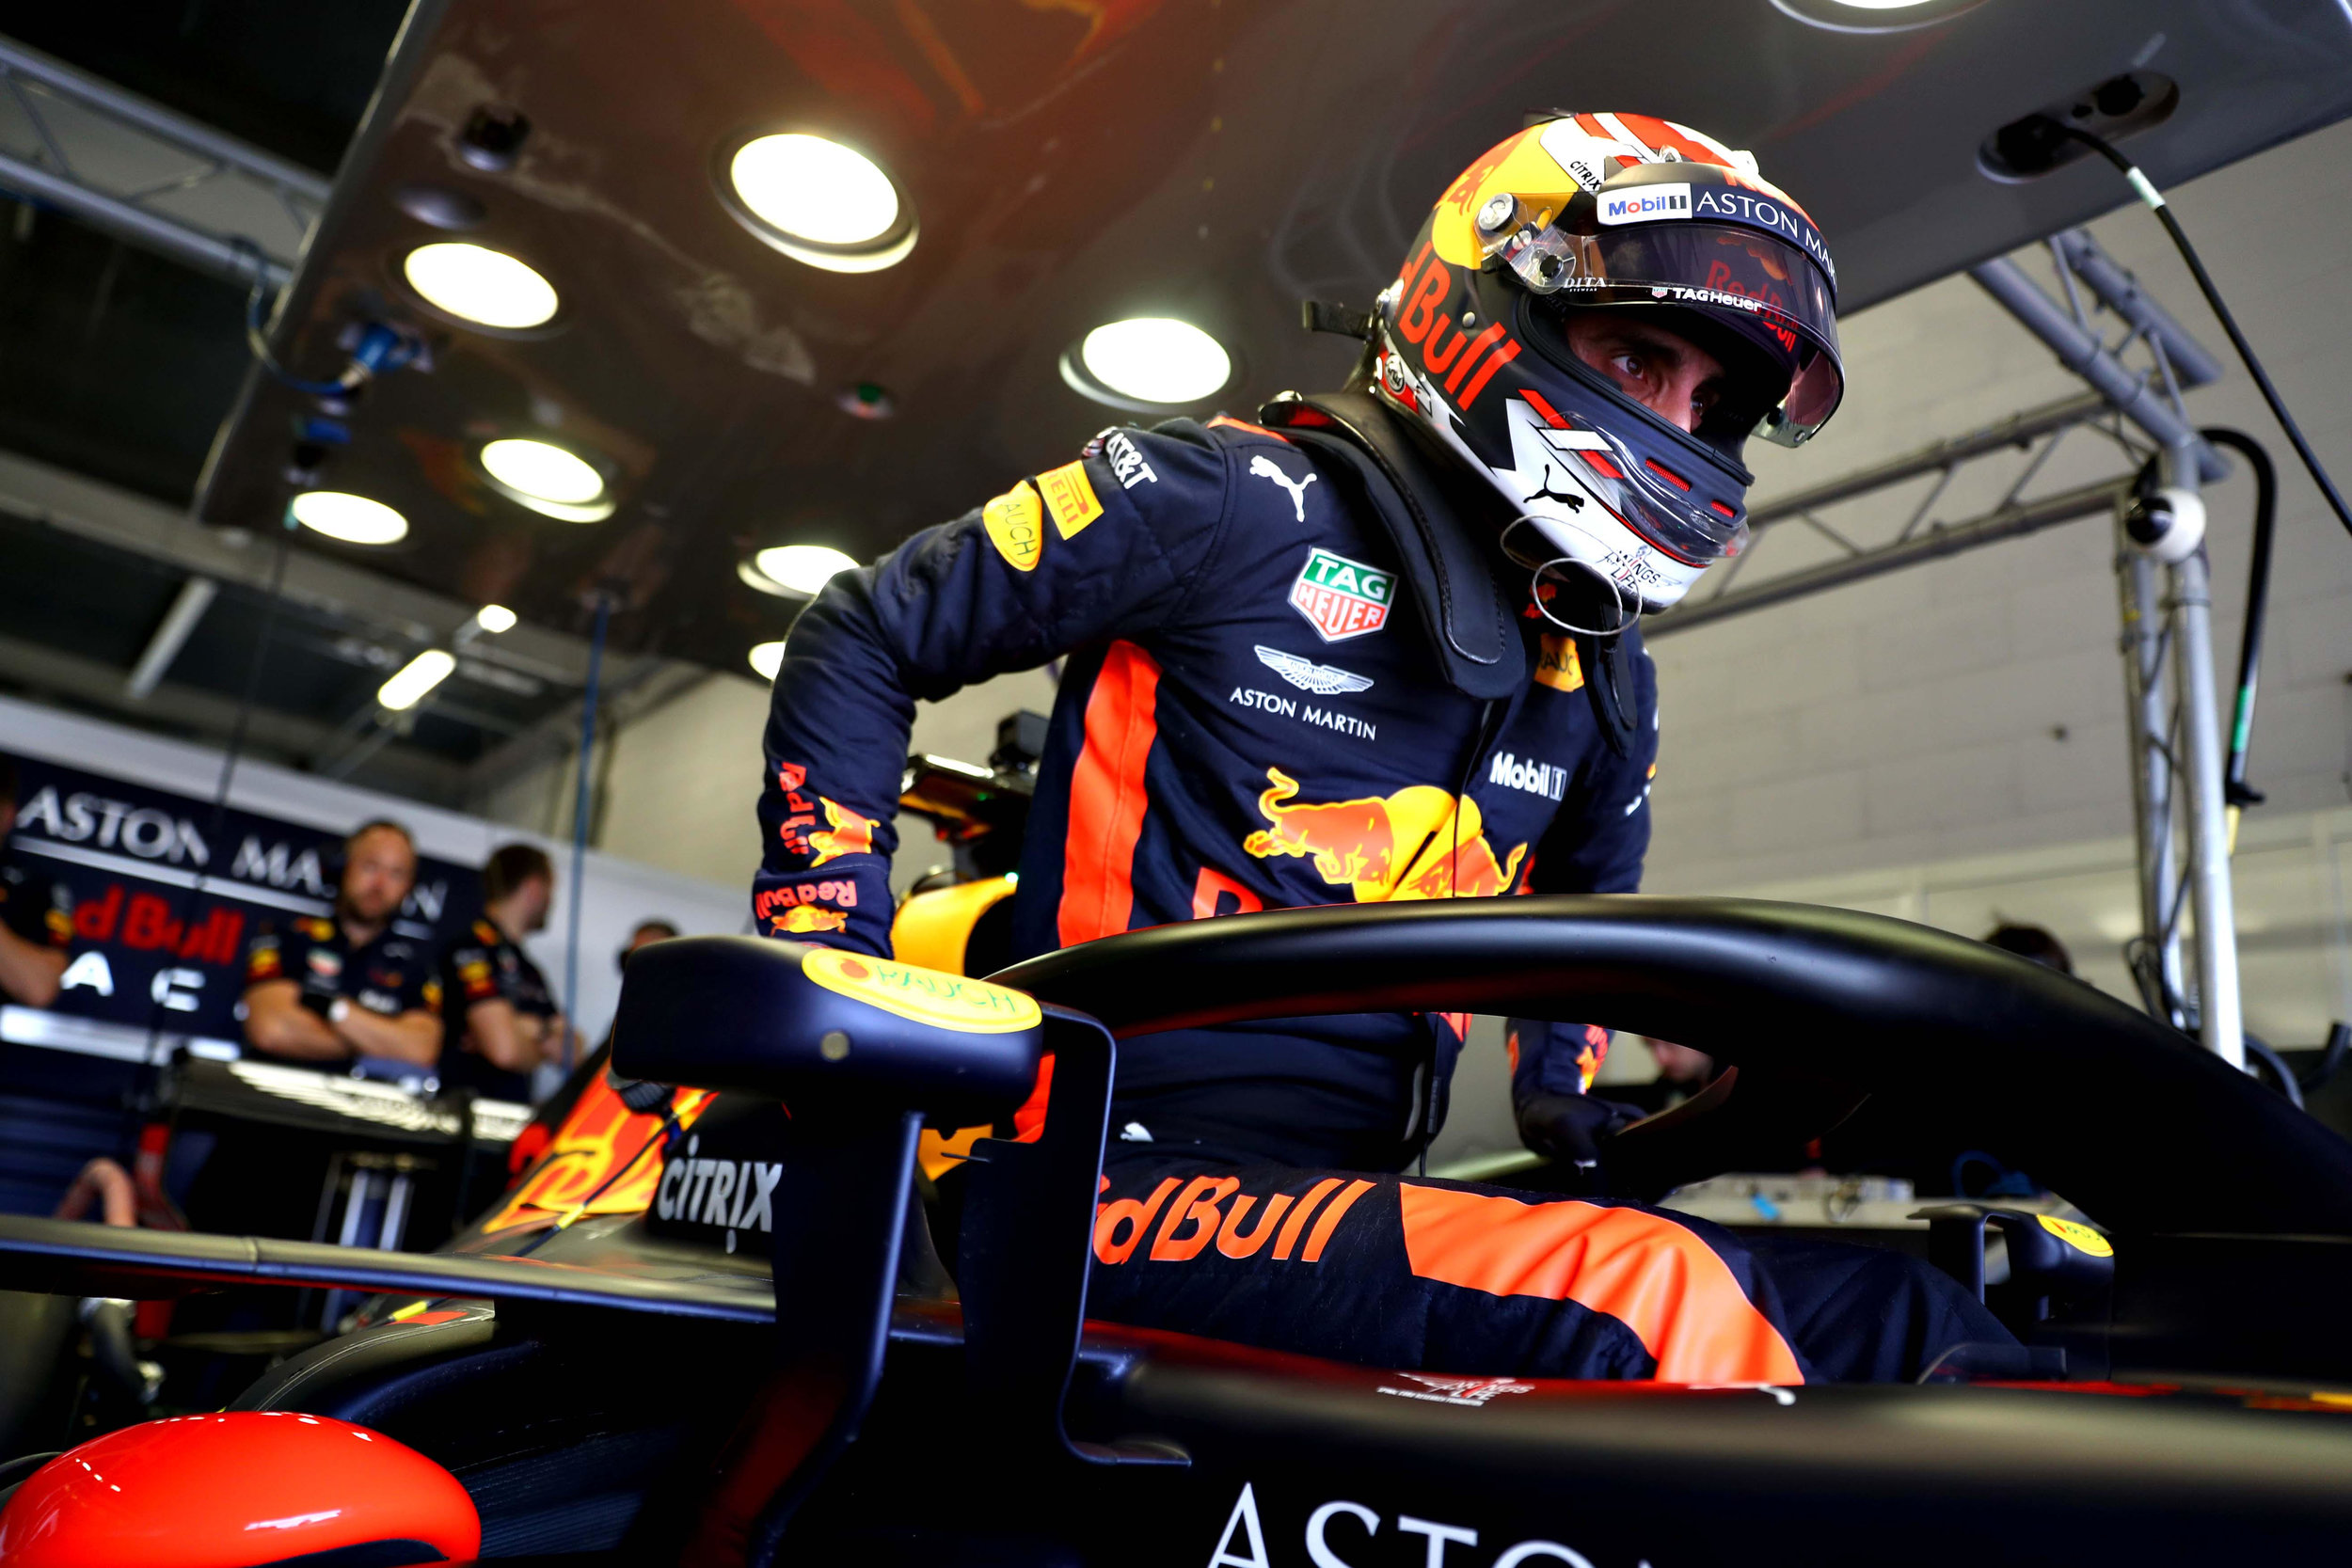 Helmart official driver Sebastien Buemi aboard the Red Bull Racing F1 car.